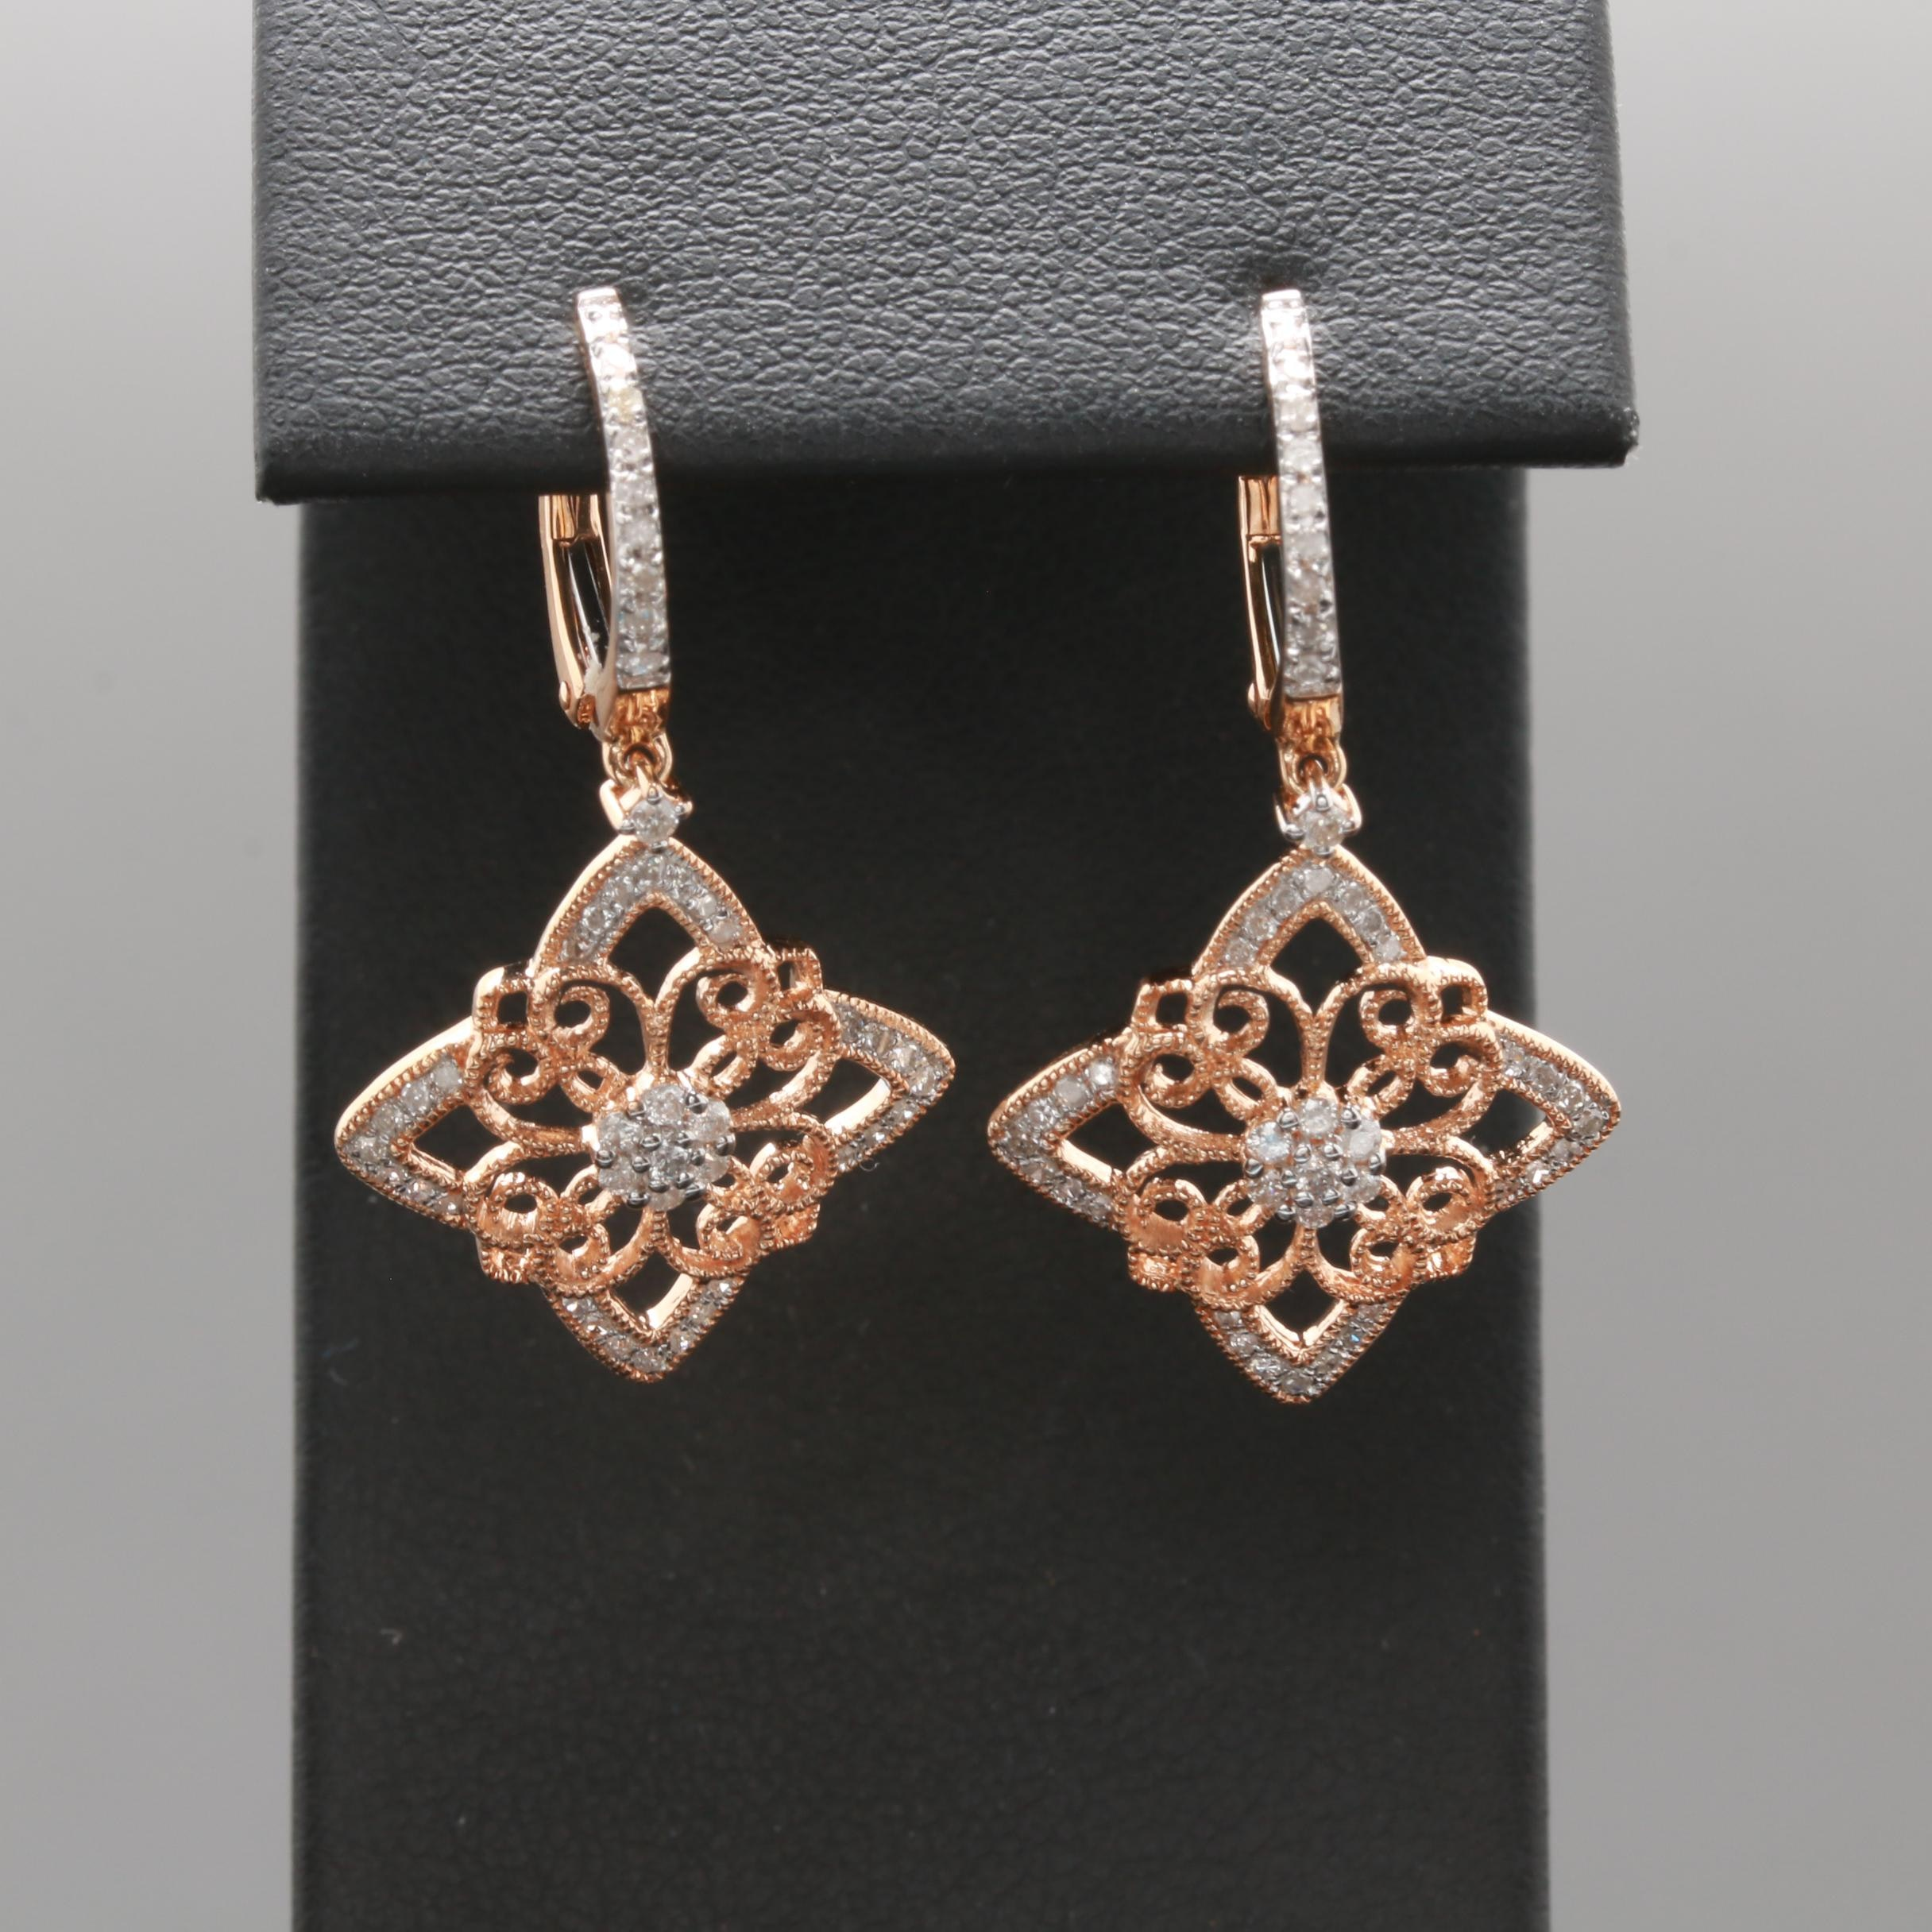 14K Rose Gold Diamond Dangle Earrings